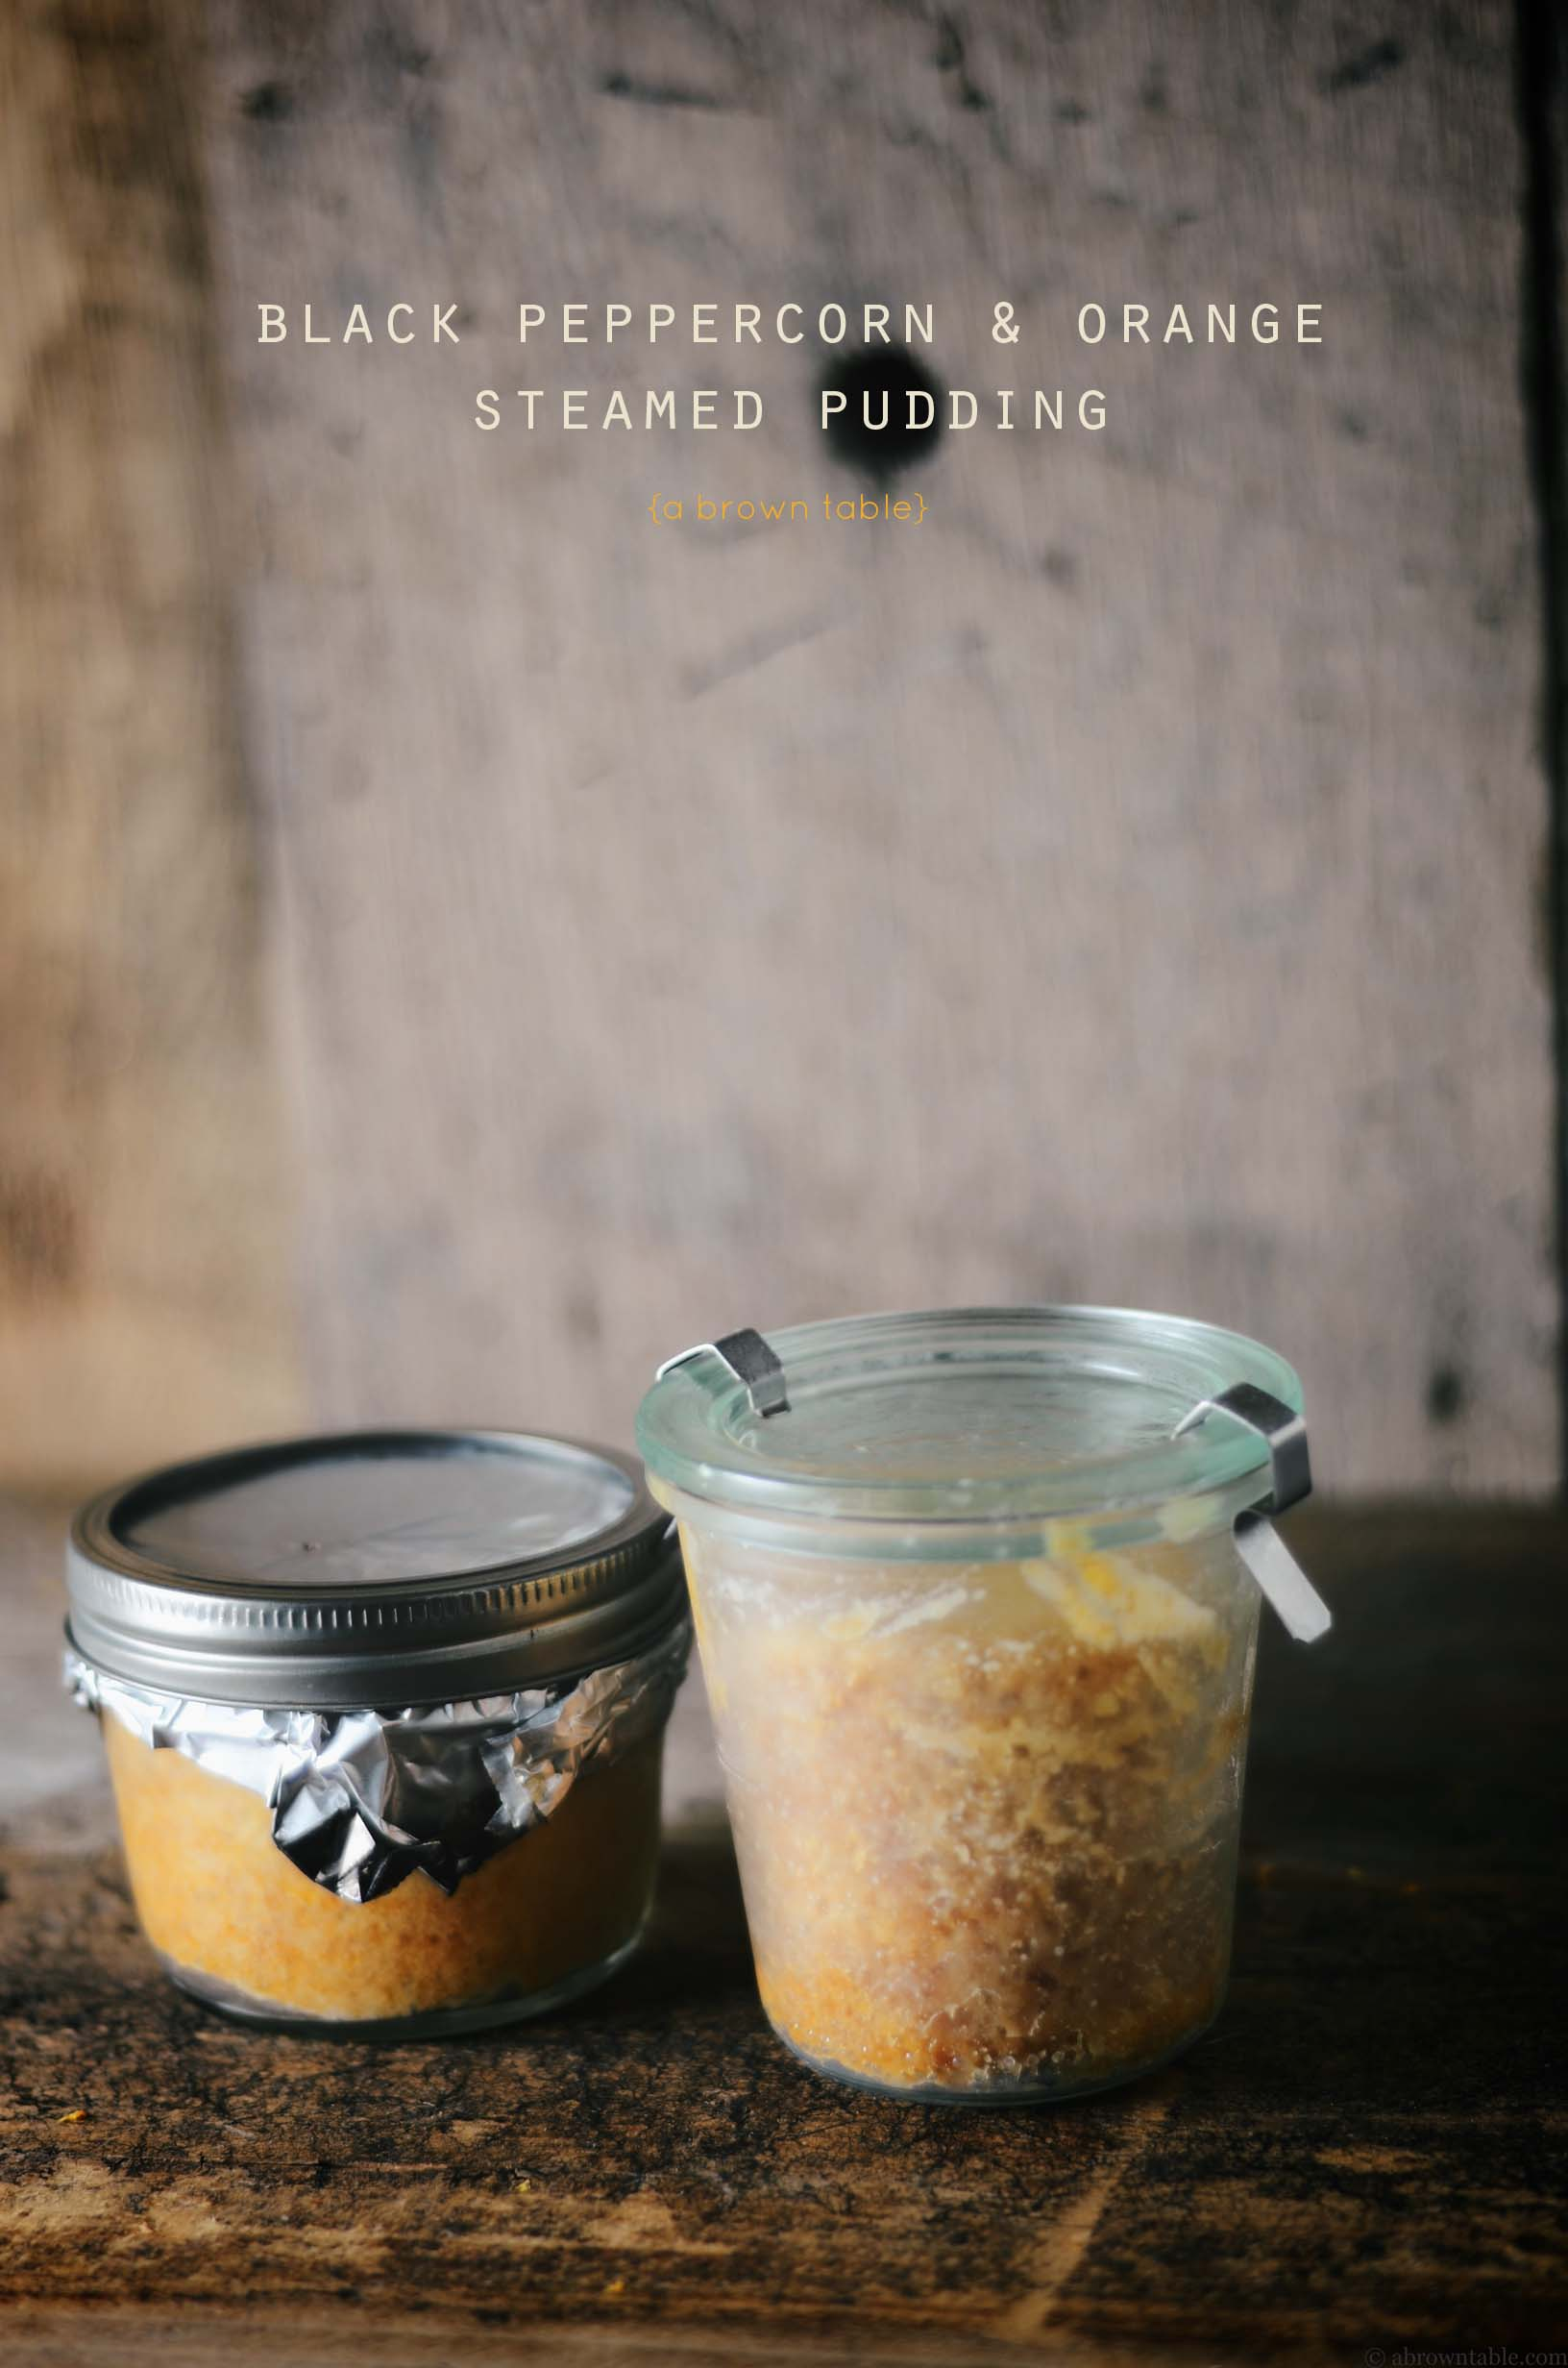 black pepper corn and orange steamed pudding jars